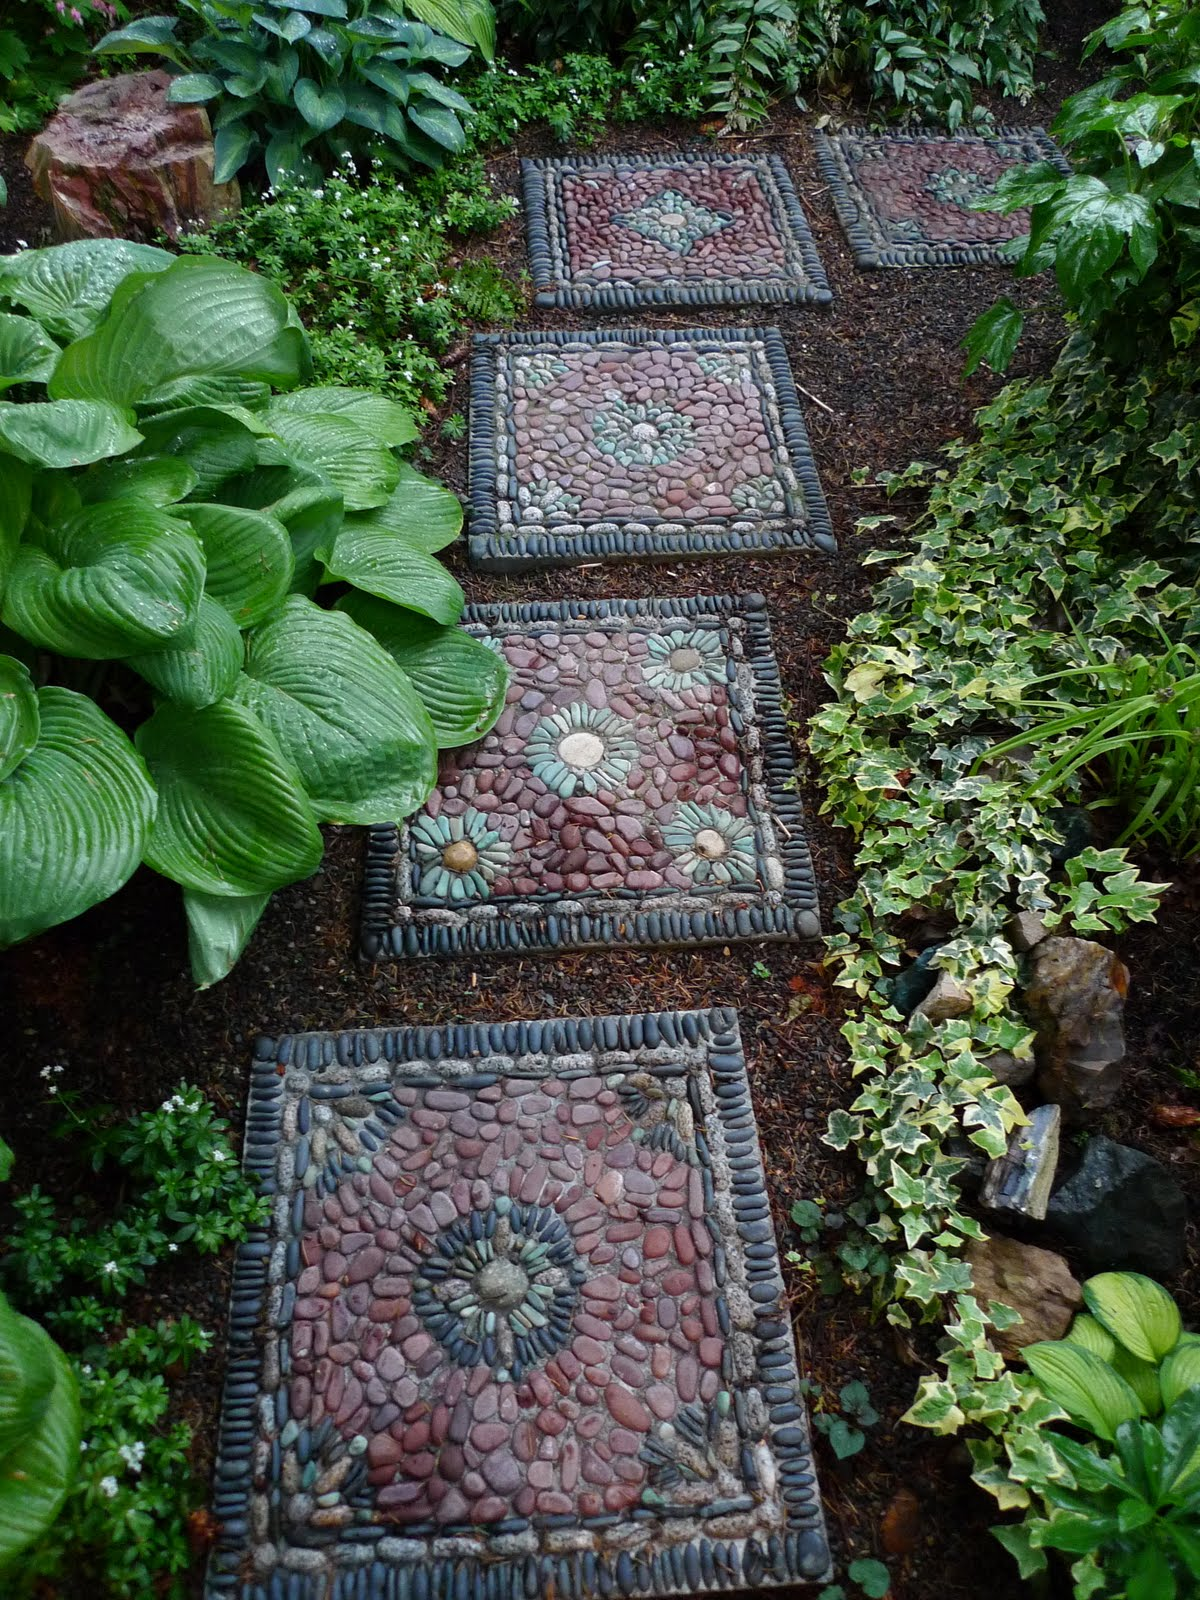 Living Room Decorate Garden 30 beautiful diy stepping stone ideas to decorate garden your how make